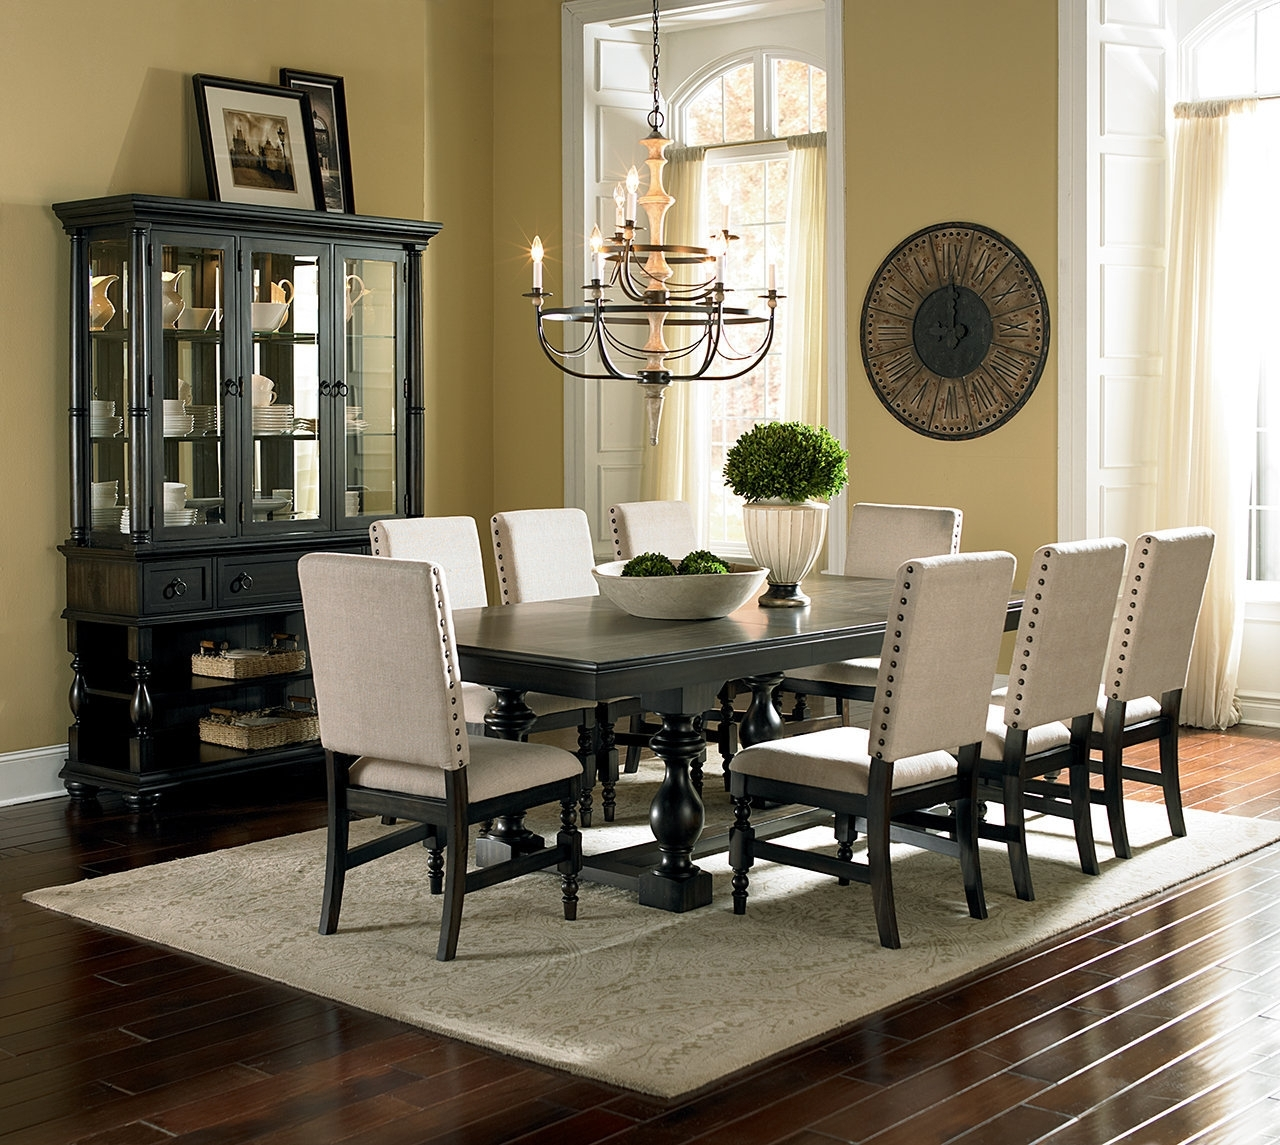 Plain Design Dining Room Sets With Fabric Chairs Norwood 6 Piece In Current Norwood 6 Piece Rectangular Extension Dining Sets With Upholstered Side Chairs (Gallery 11 of 25)